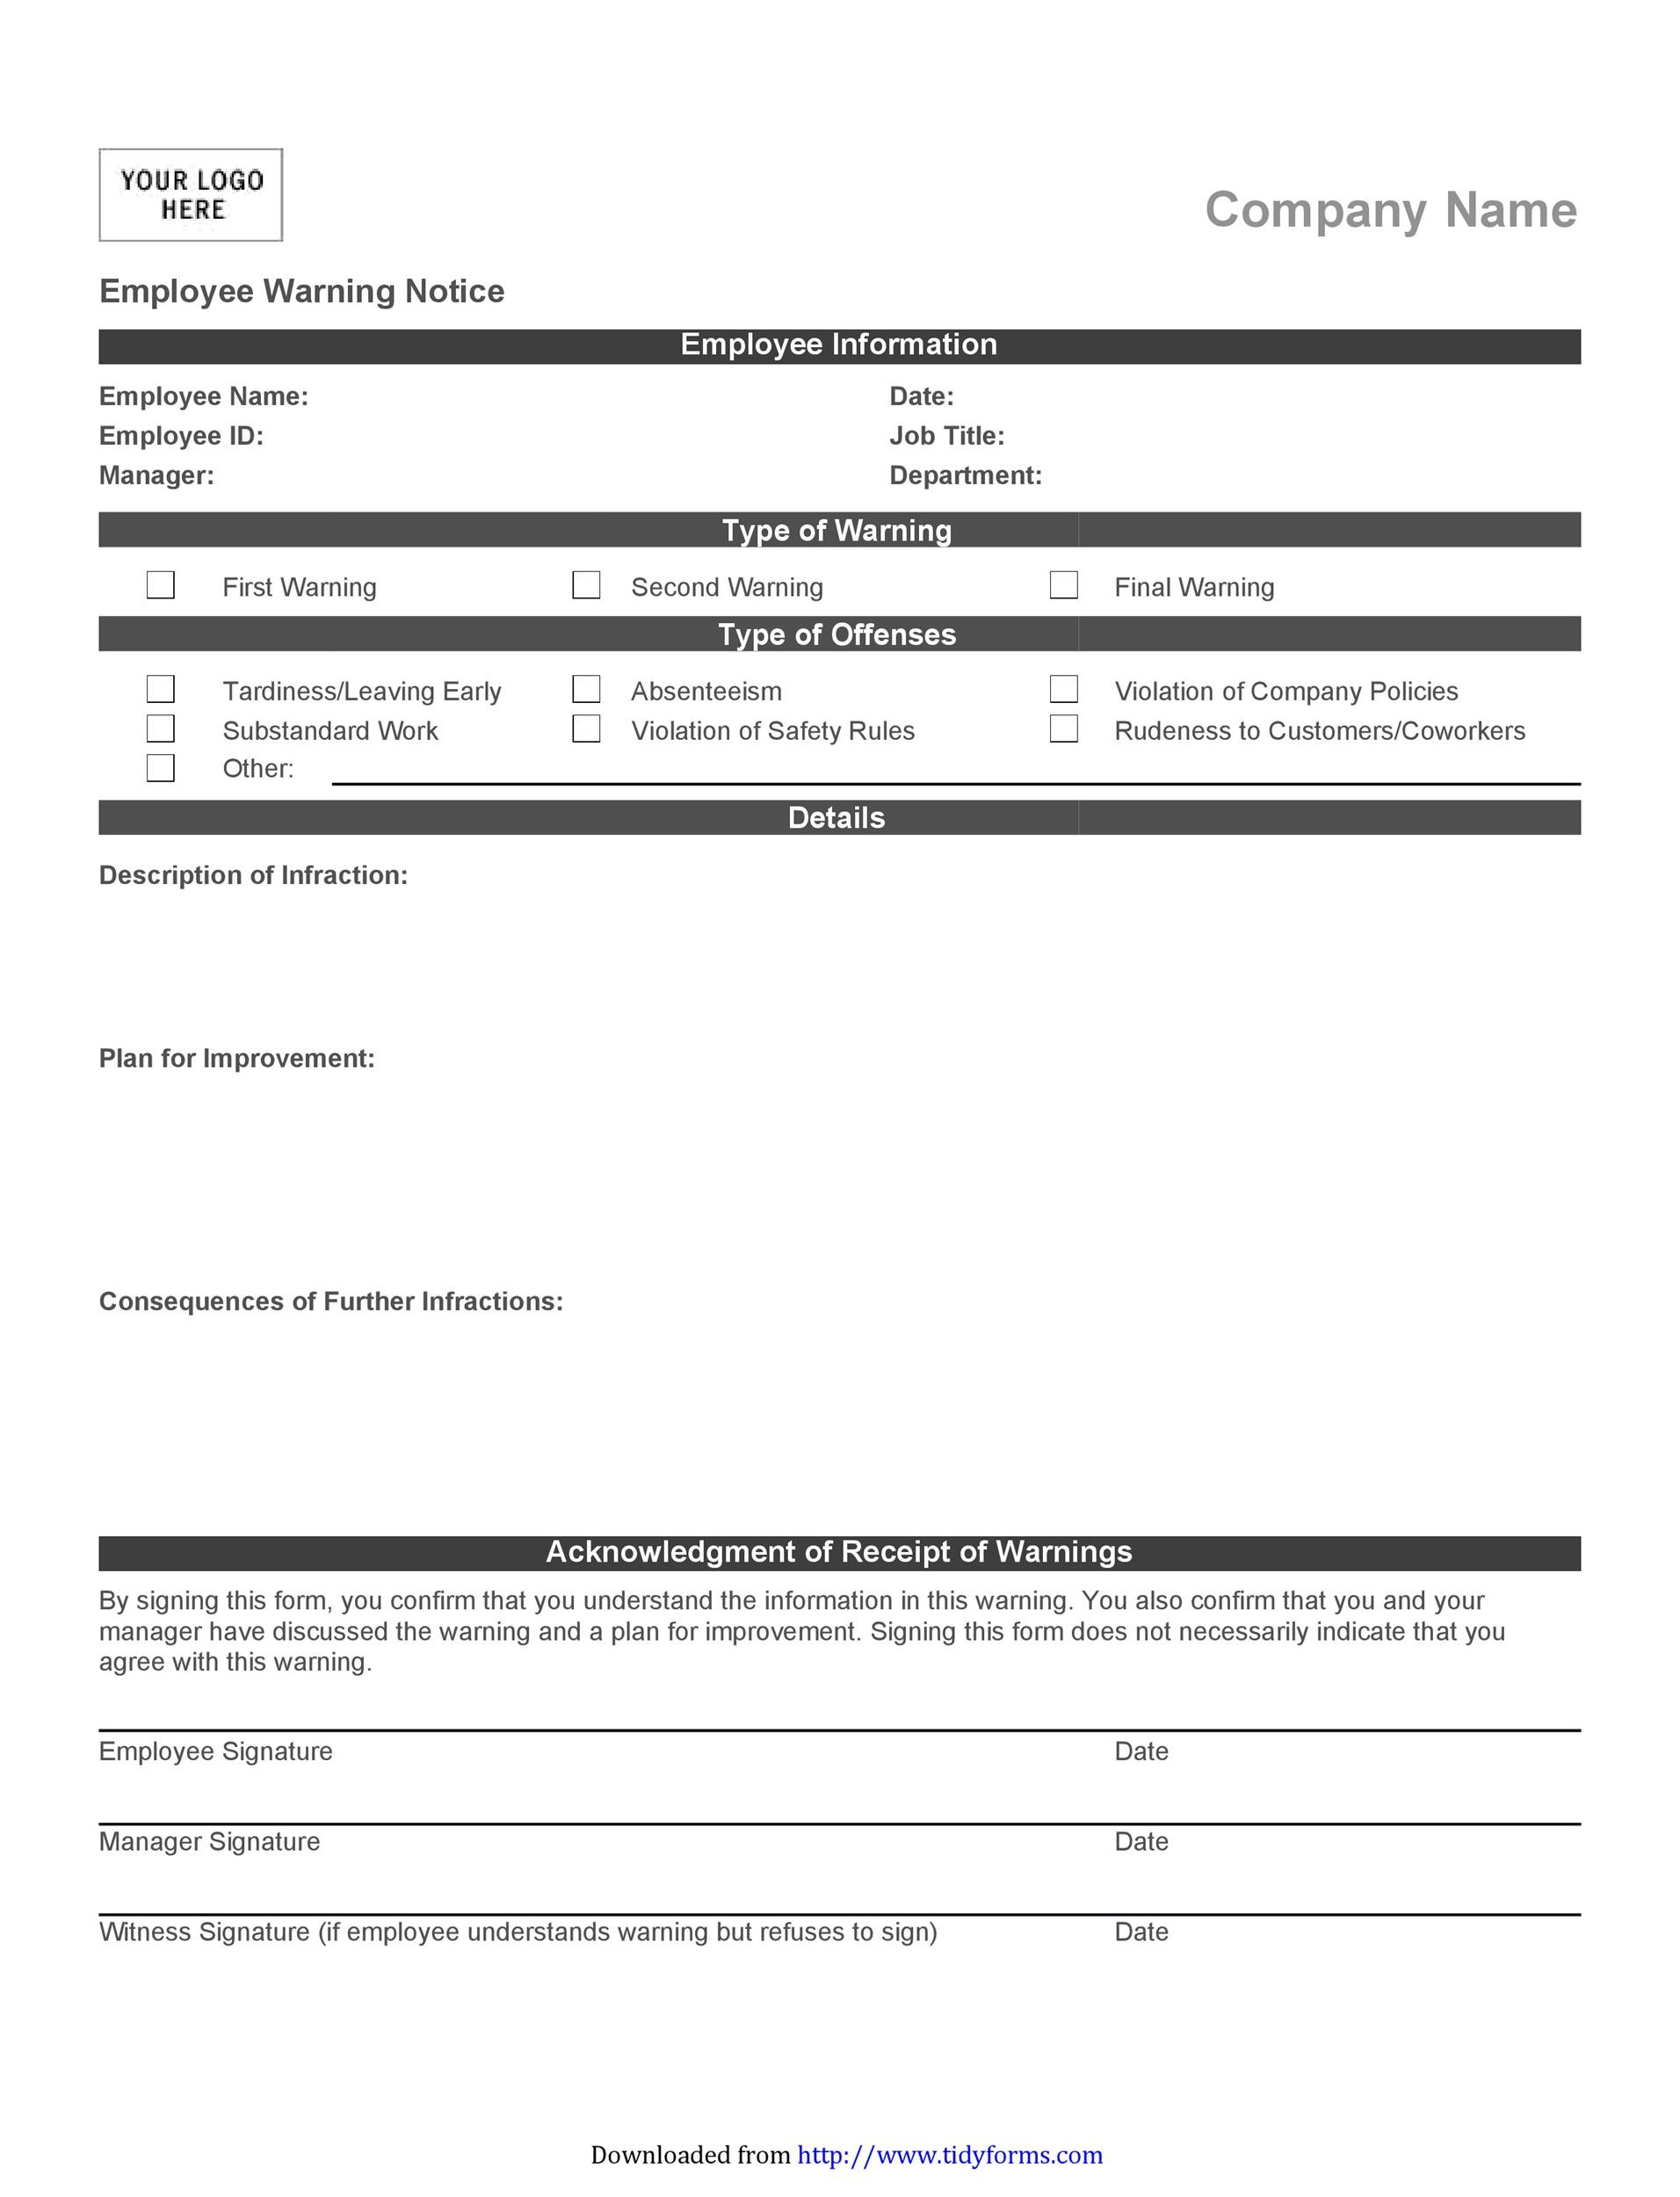 Employee Warning Notice  Download  Free Templates  Forms